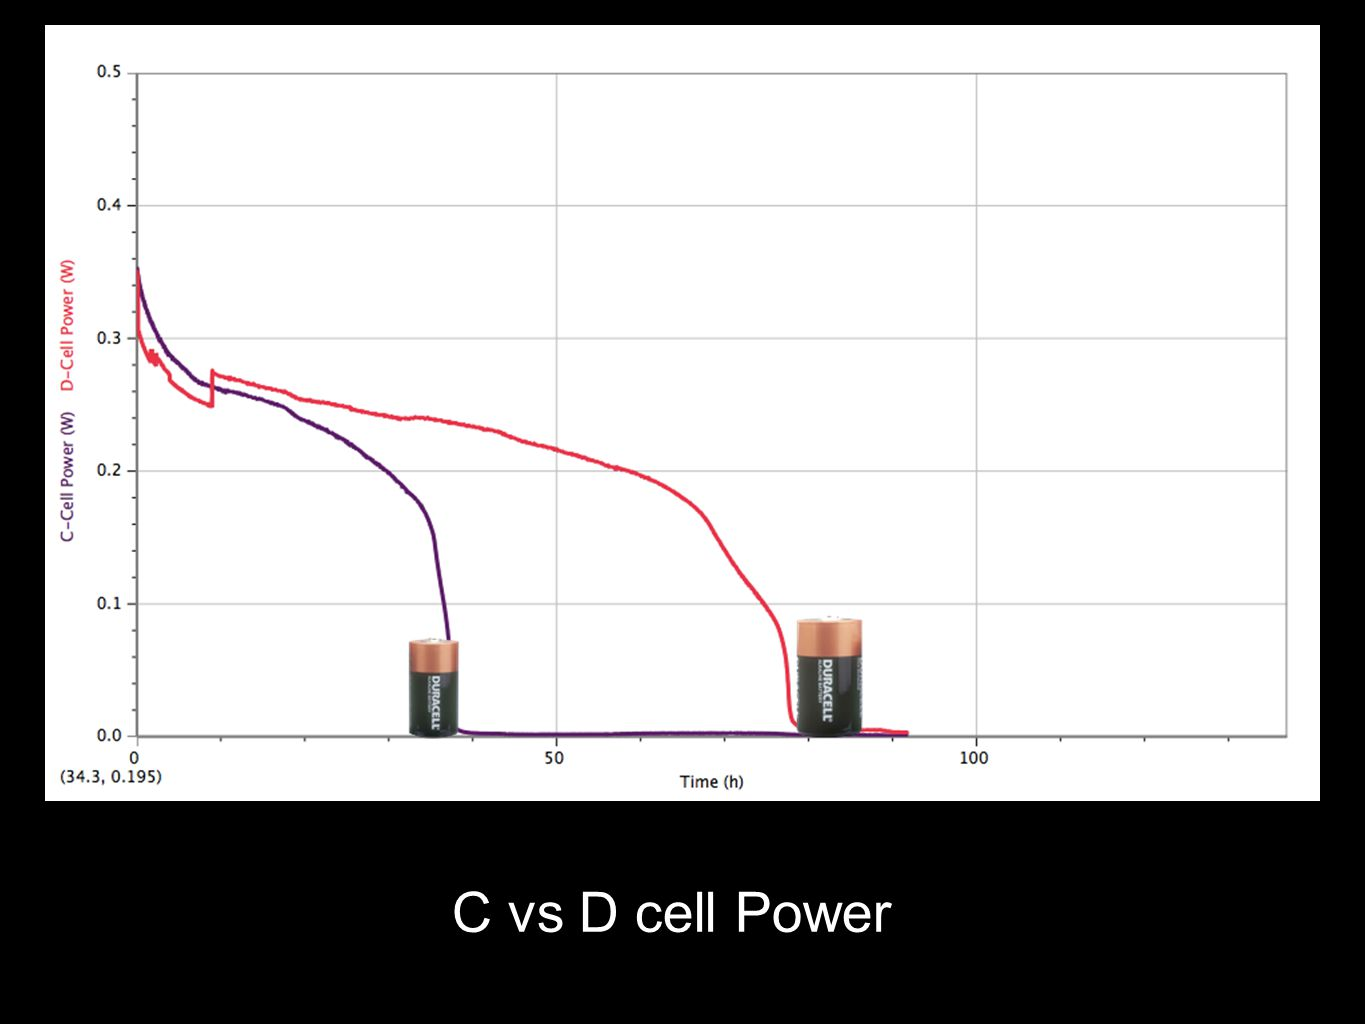 C vs D cell Power